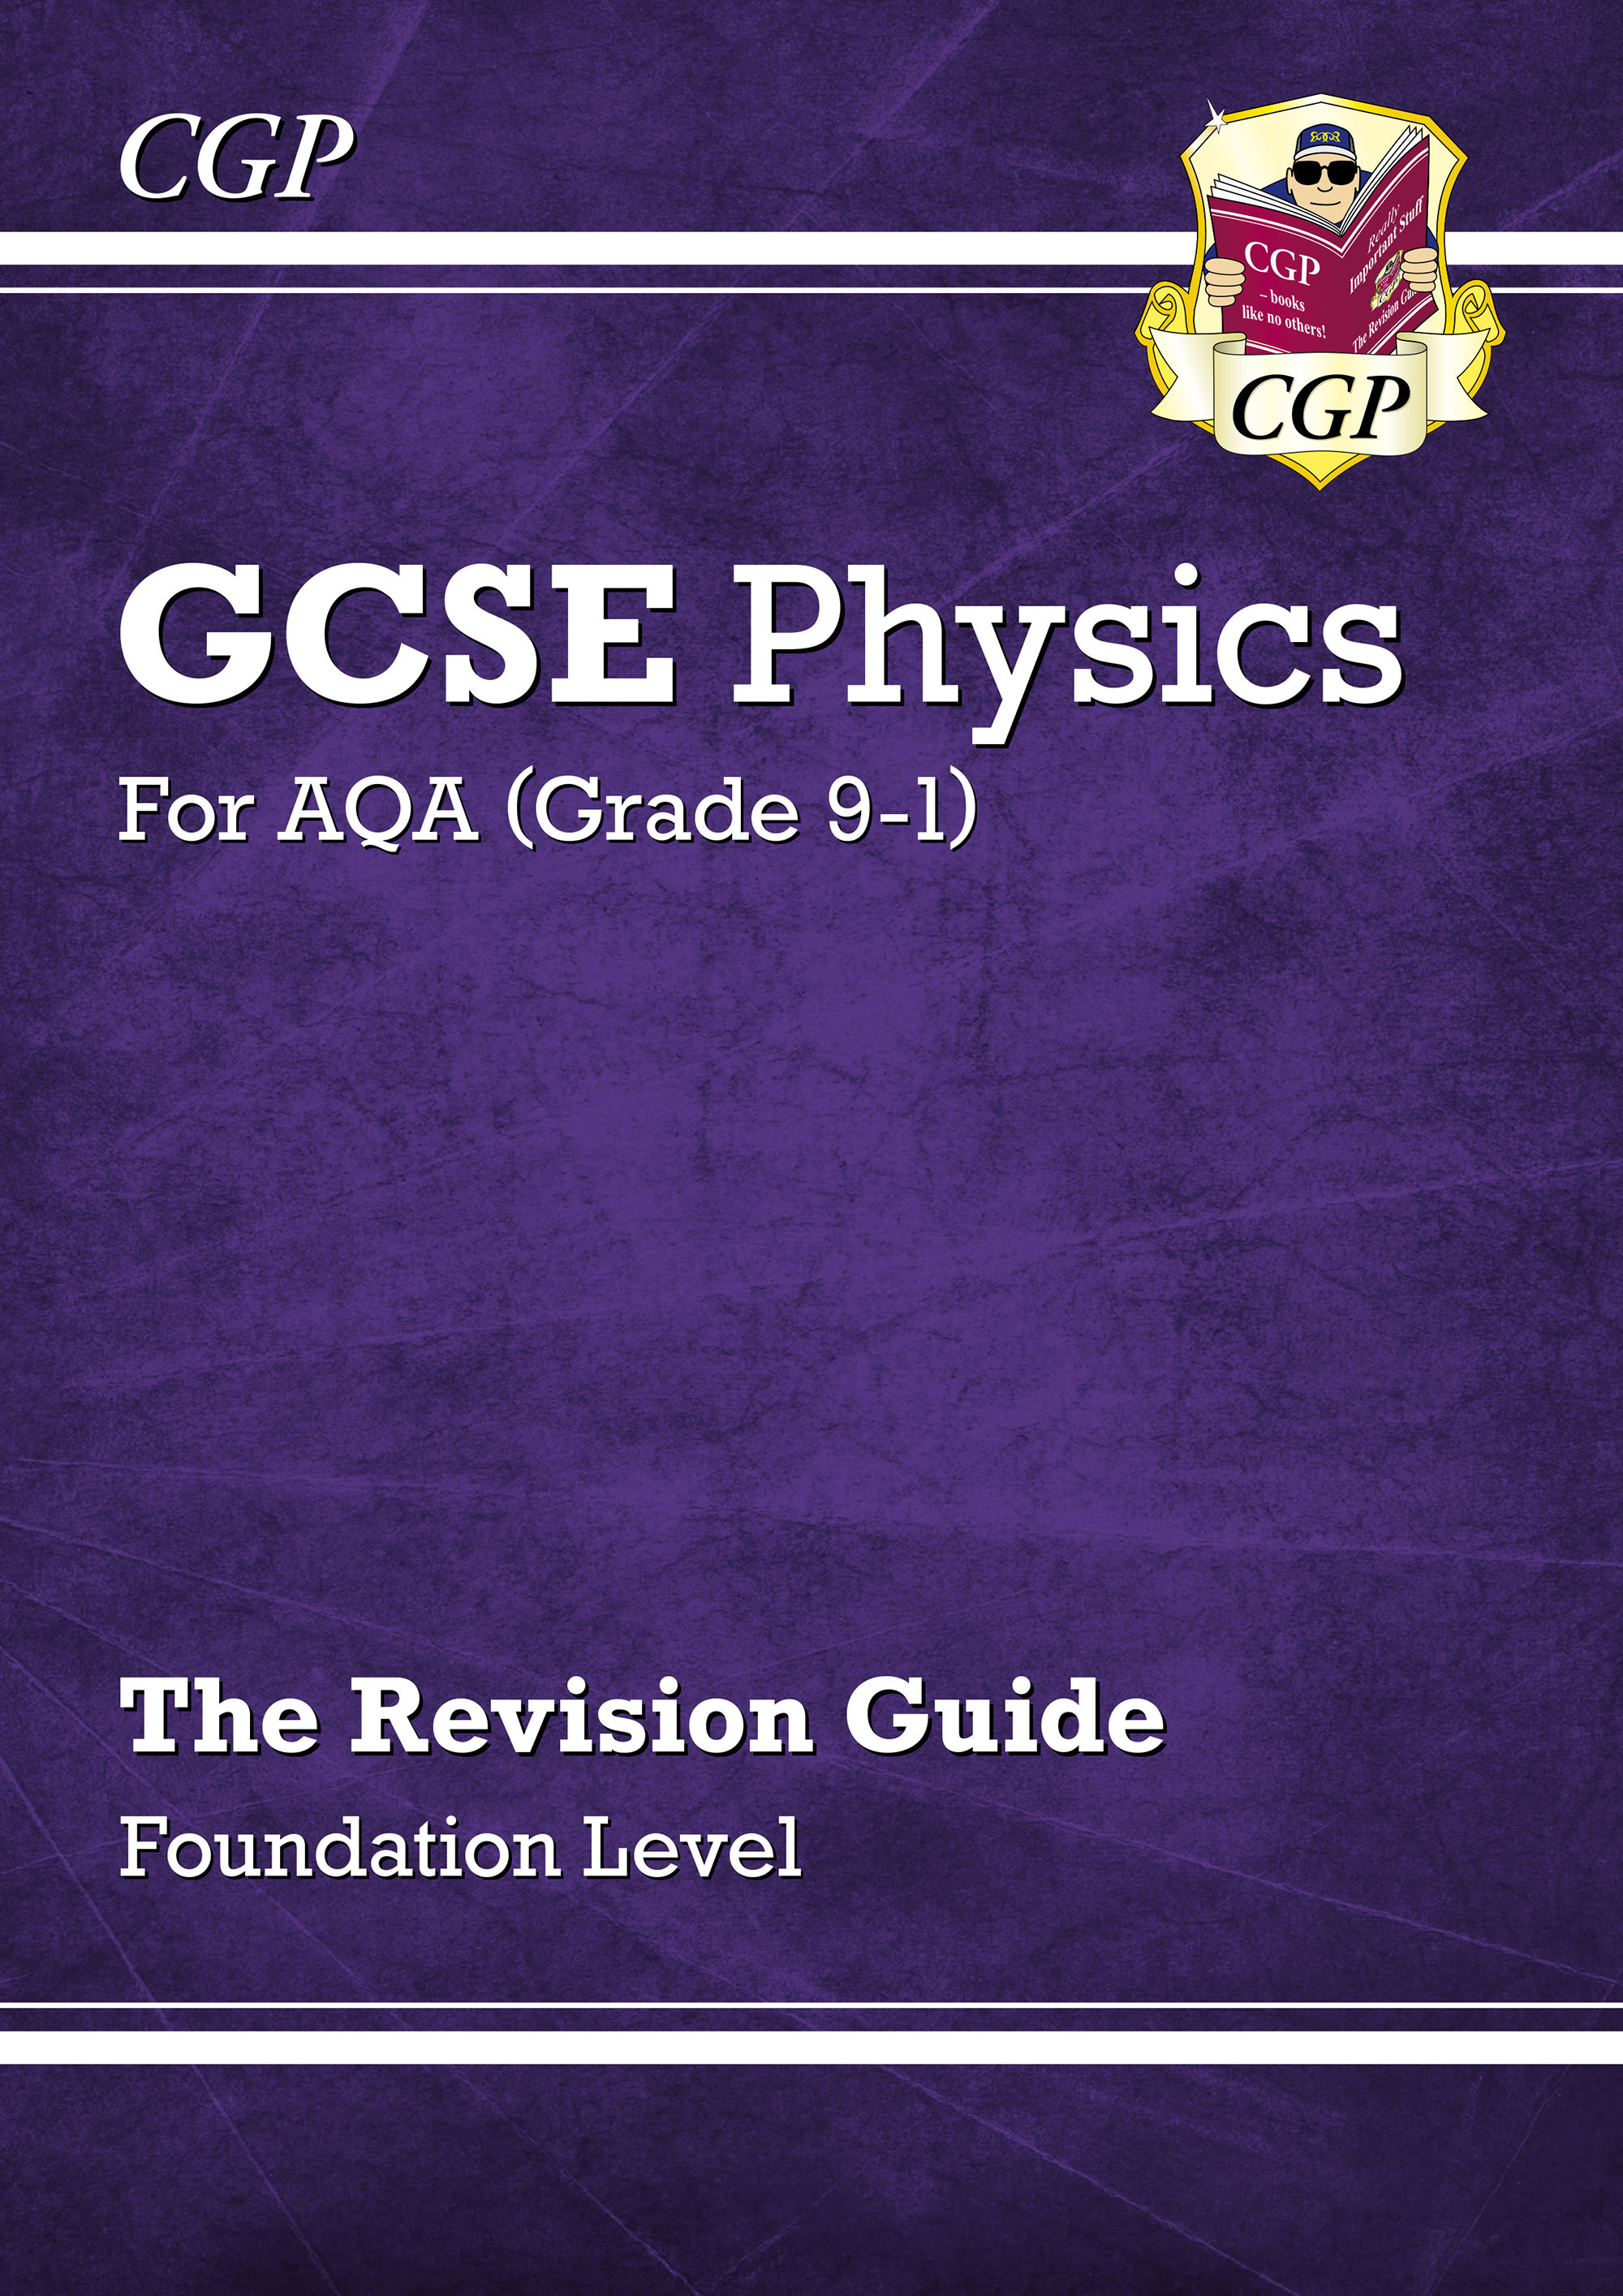 PAFR41D - New Grade 9-1 GCSE Physics: AQA Revision Guide Online Edition - Foundation